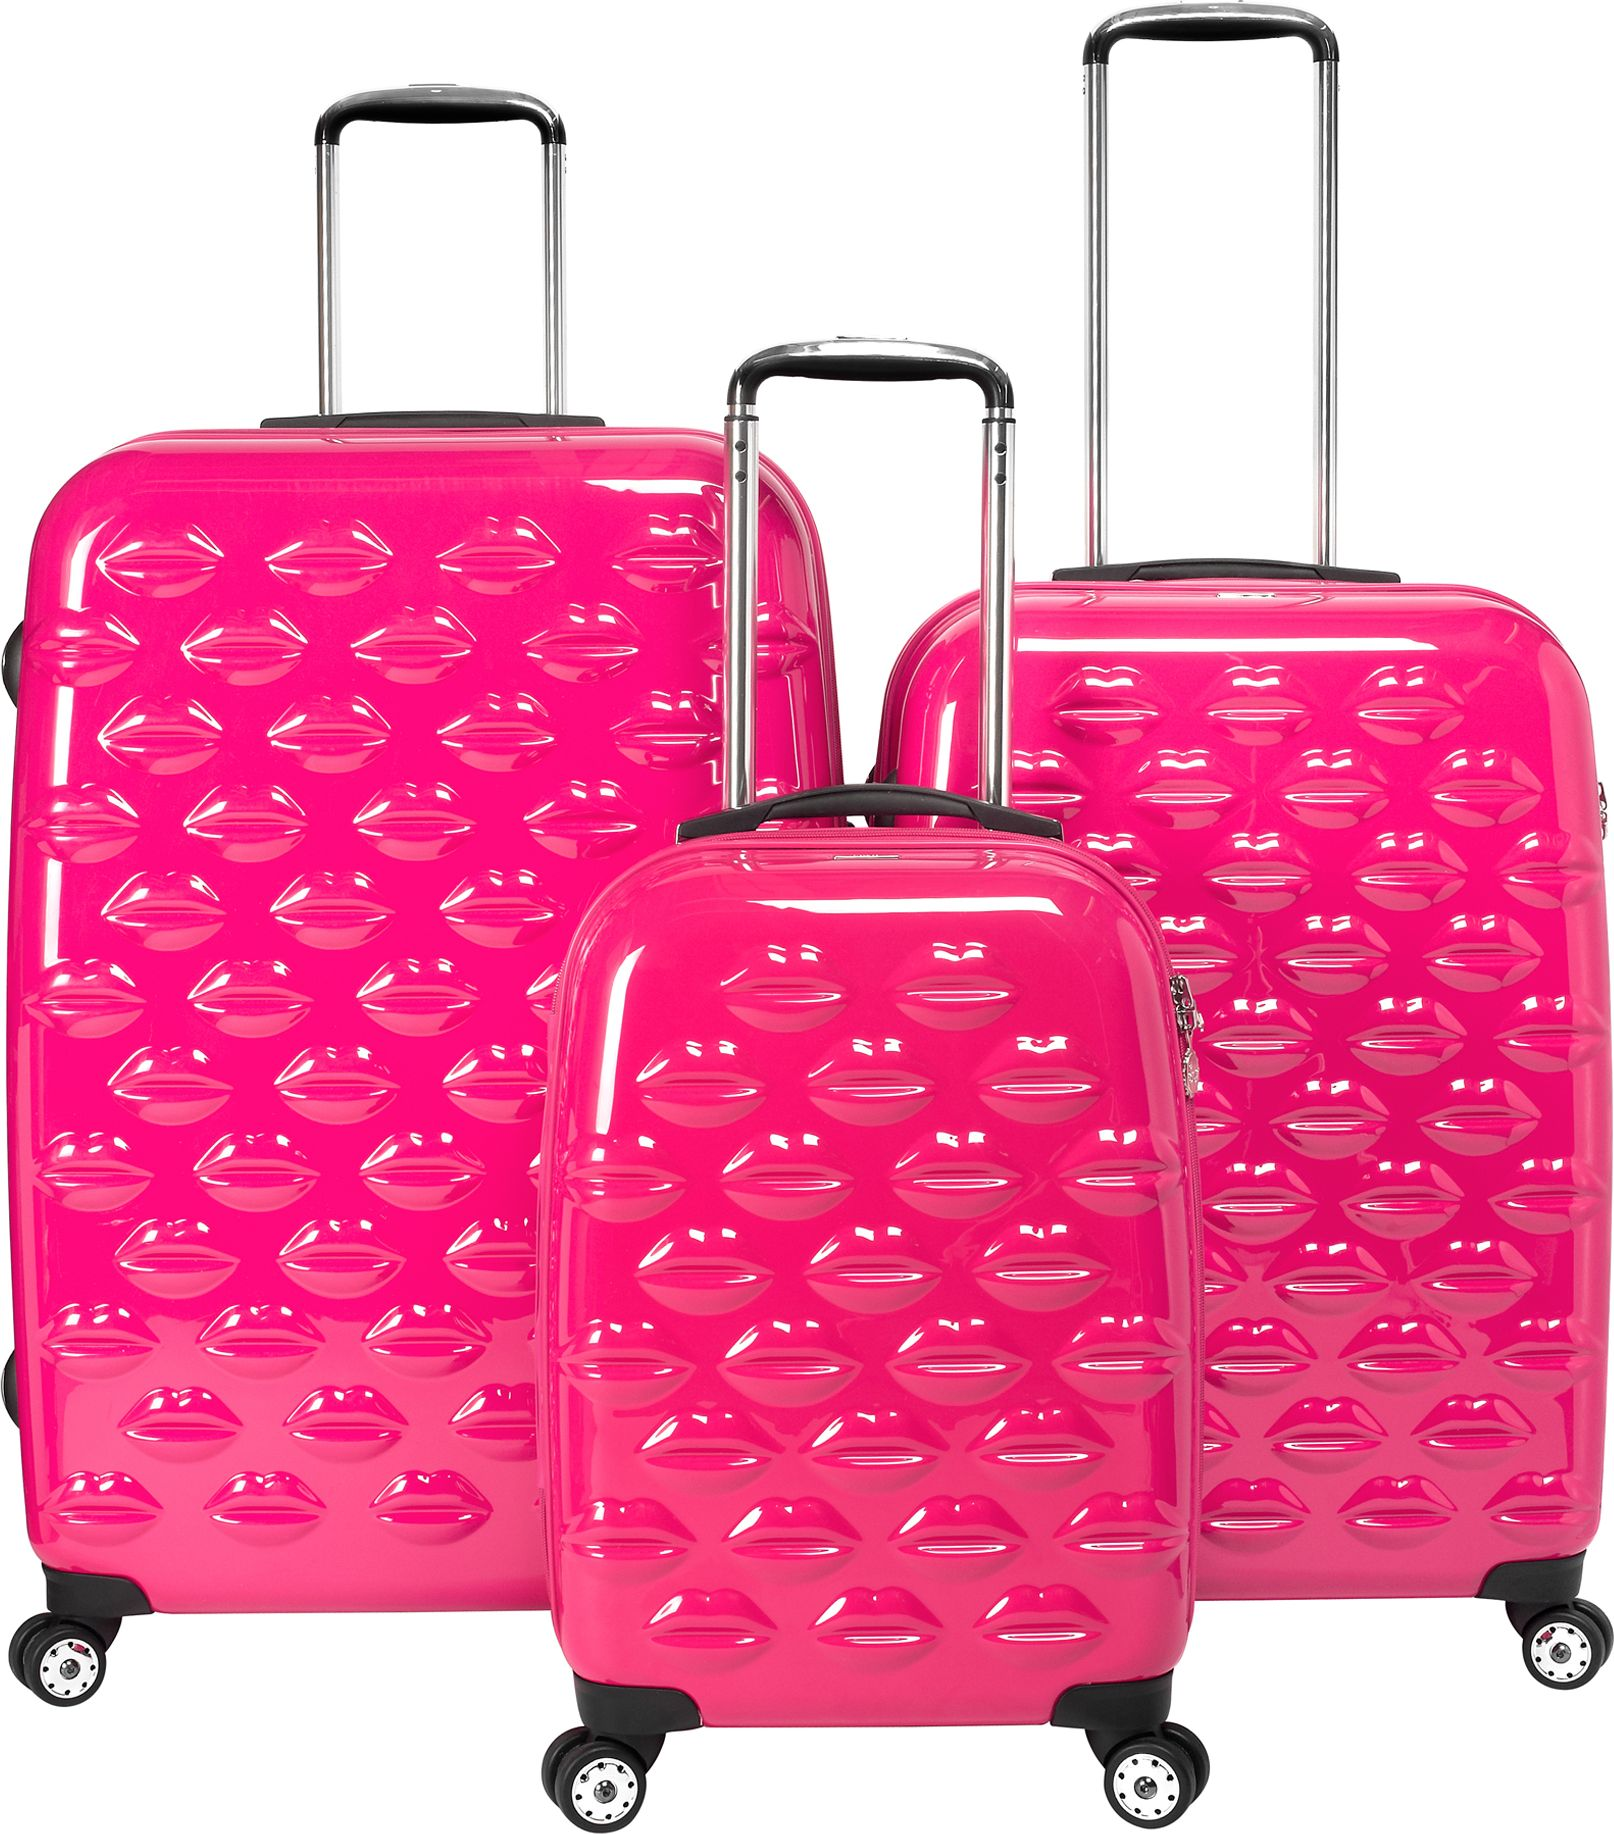 Pink 4 Wheel Suitcase | Luggage And Suitcases